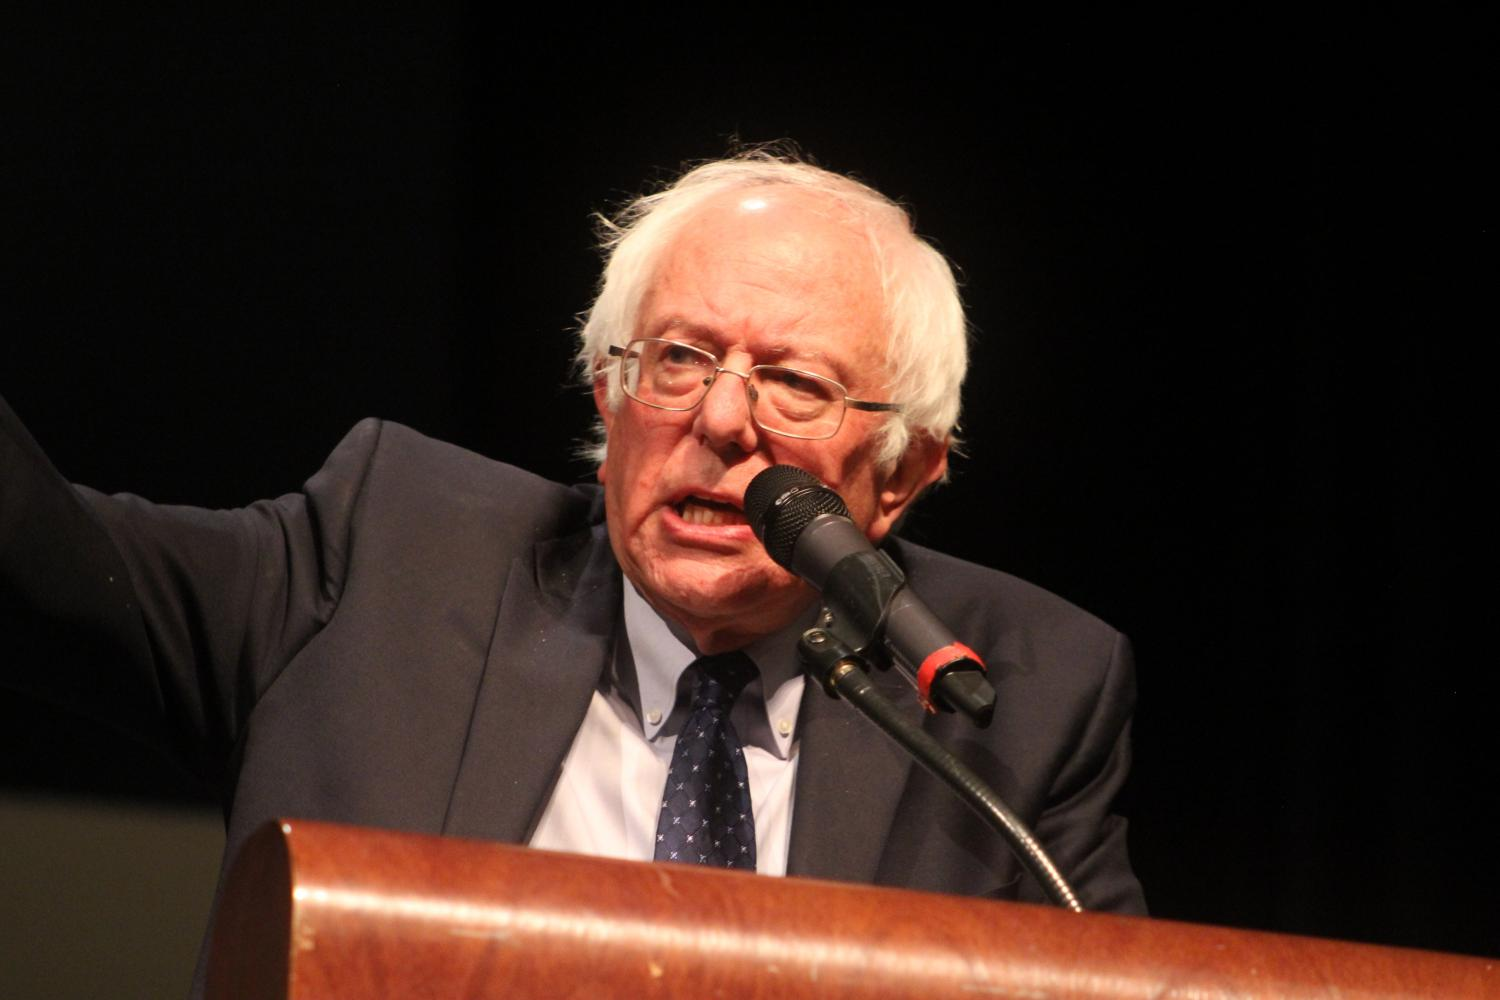 Sen.+Bernie+Sanders+of+Vermont+speaks+to+students+in+the+Naperville+Central+auditorium+on+Aug.+30.